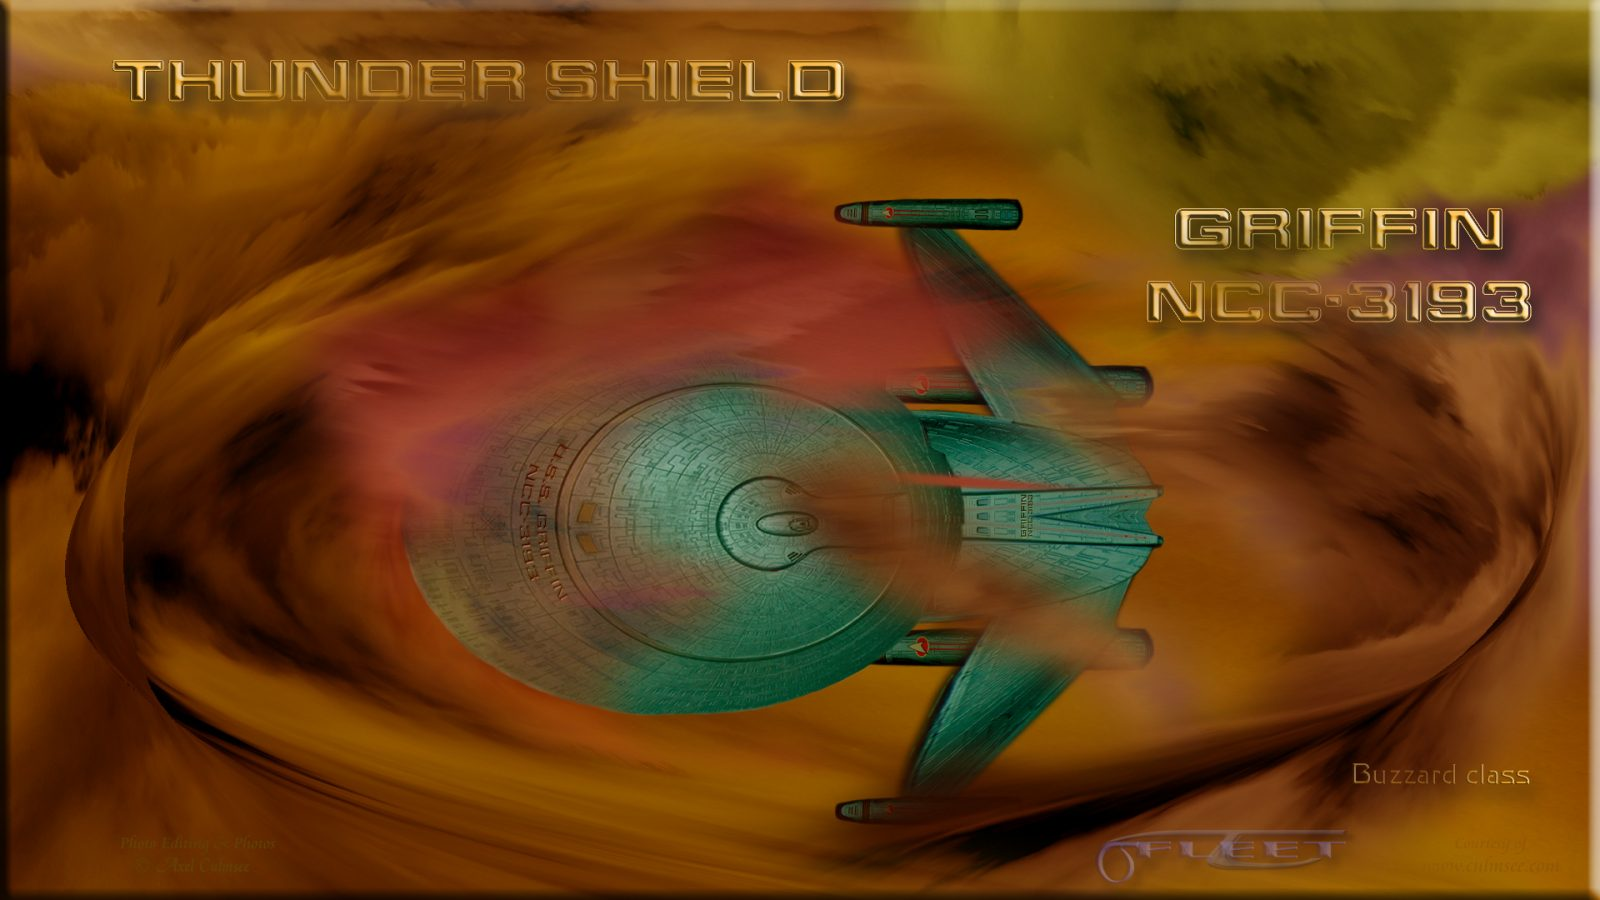 Griffin NCC-3193 thunder shield